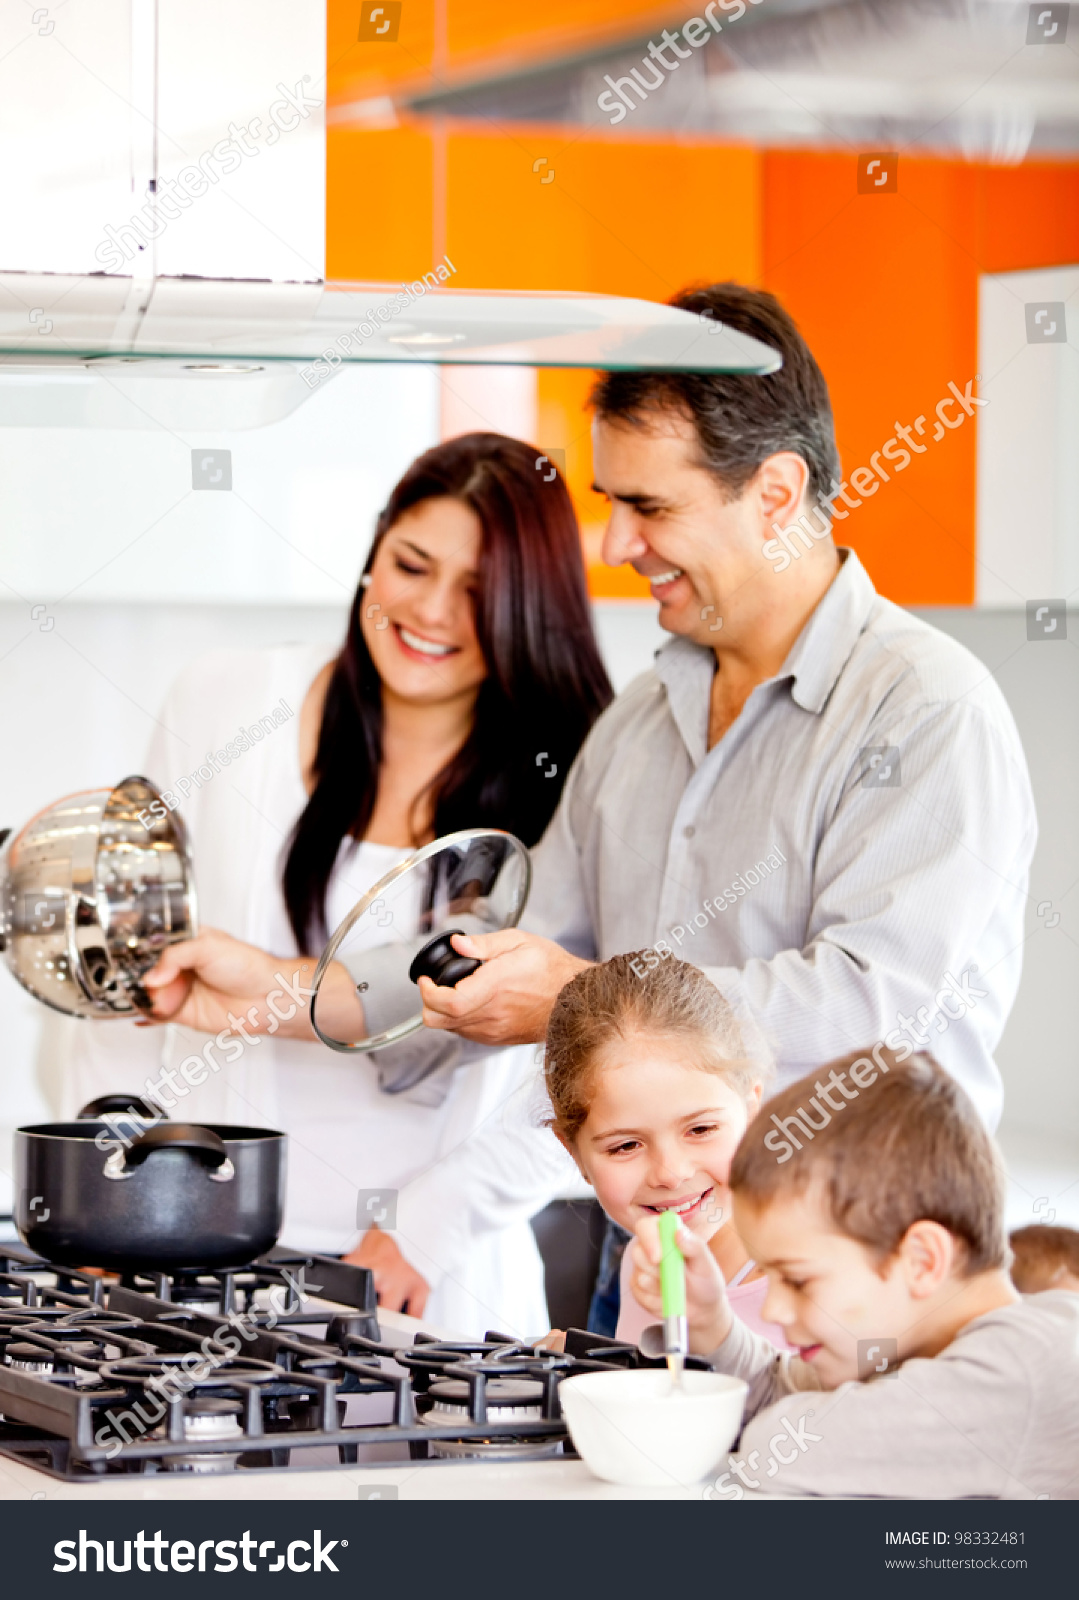 happy family kitchen cooking dinner together stock photo, Kitchen design